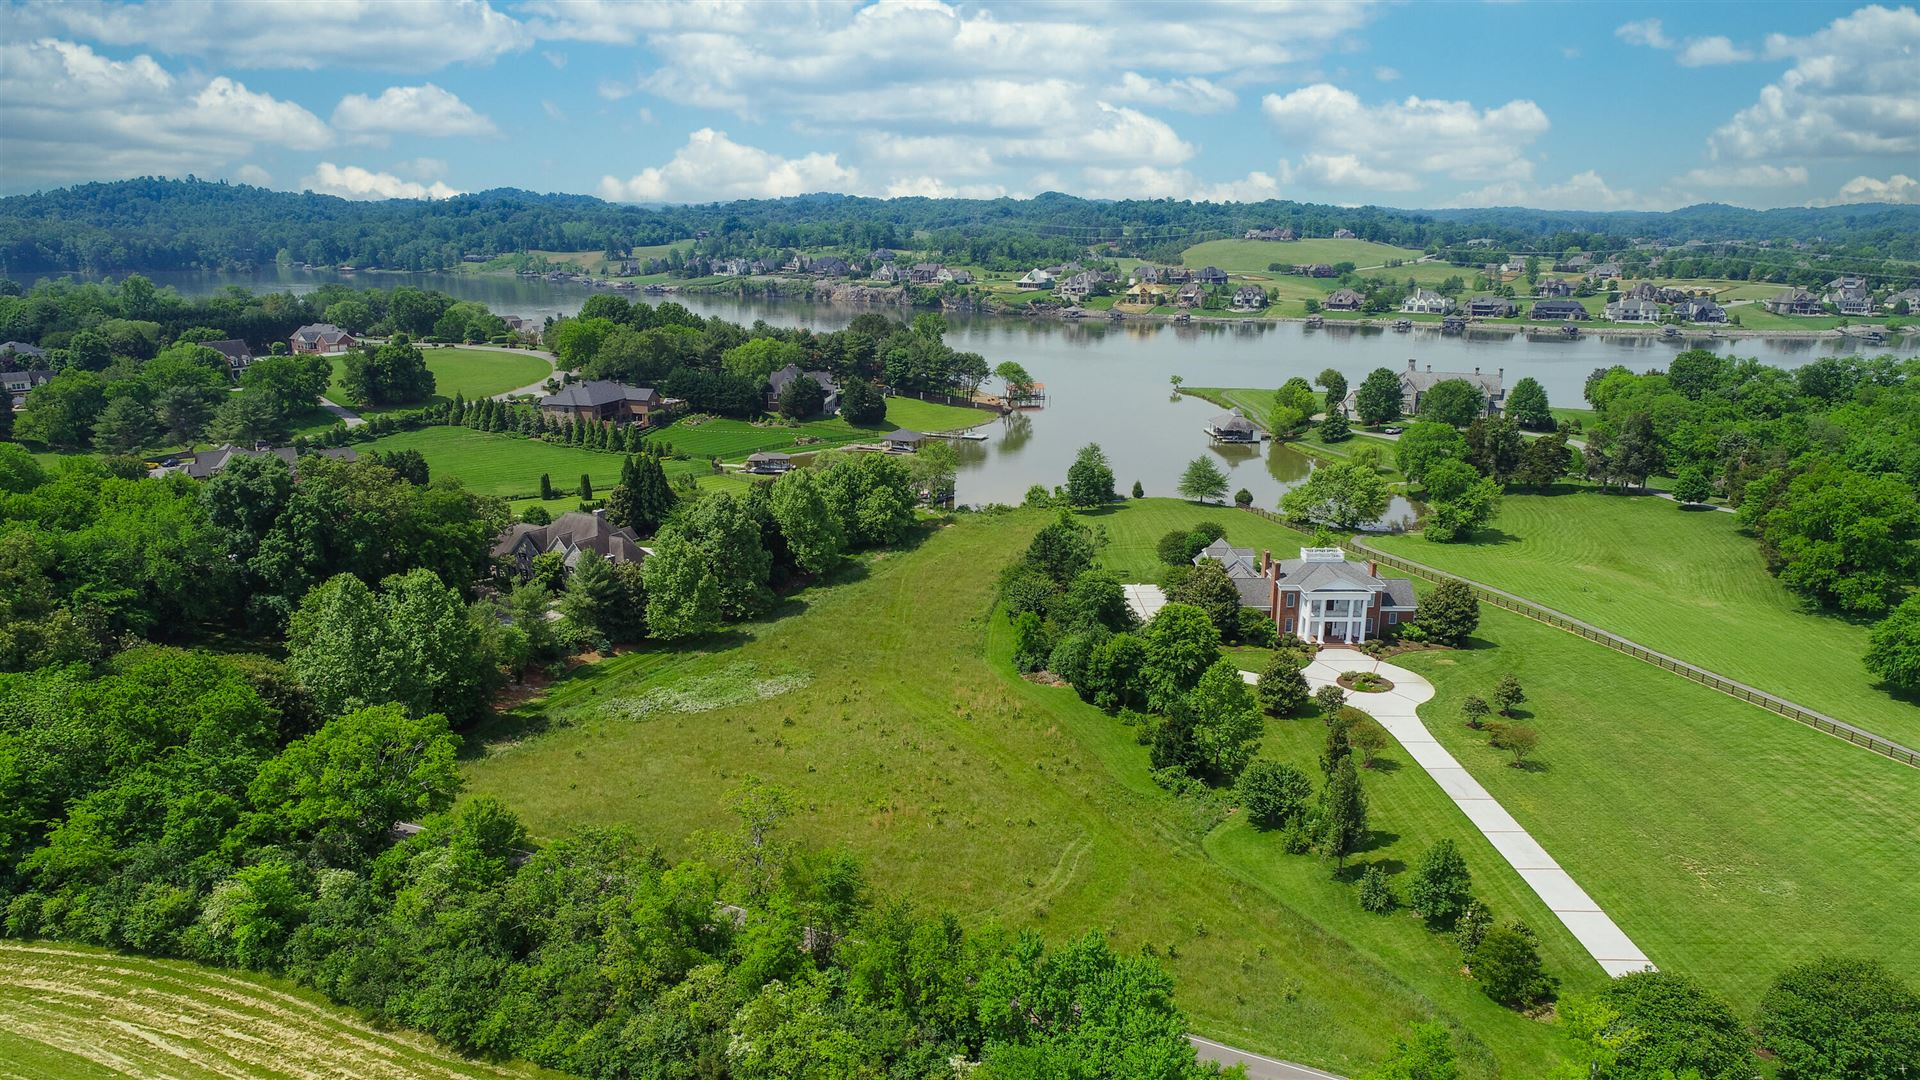 Photo for 3103 Tooles Bend Rd, Knoxville, TN 37922 (MLS # 1142990)